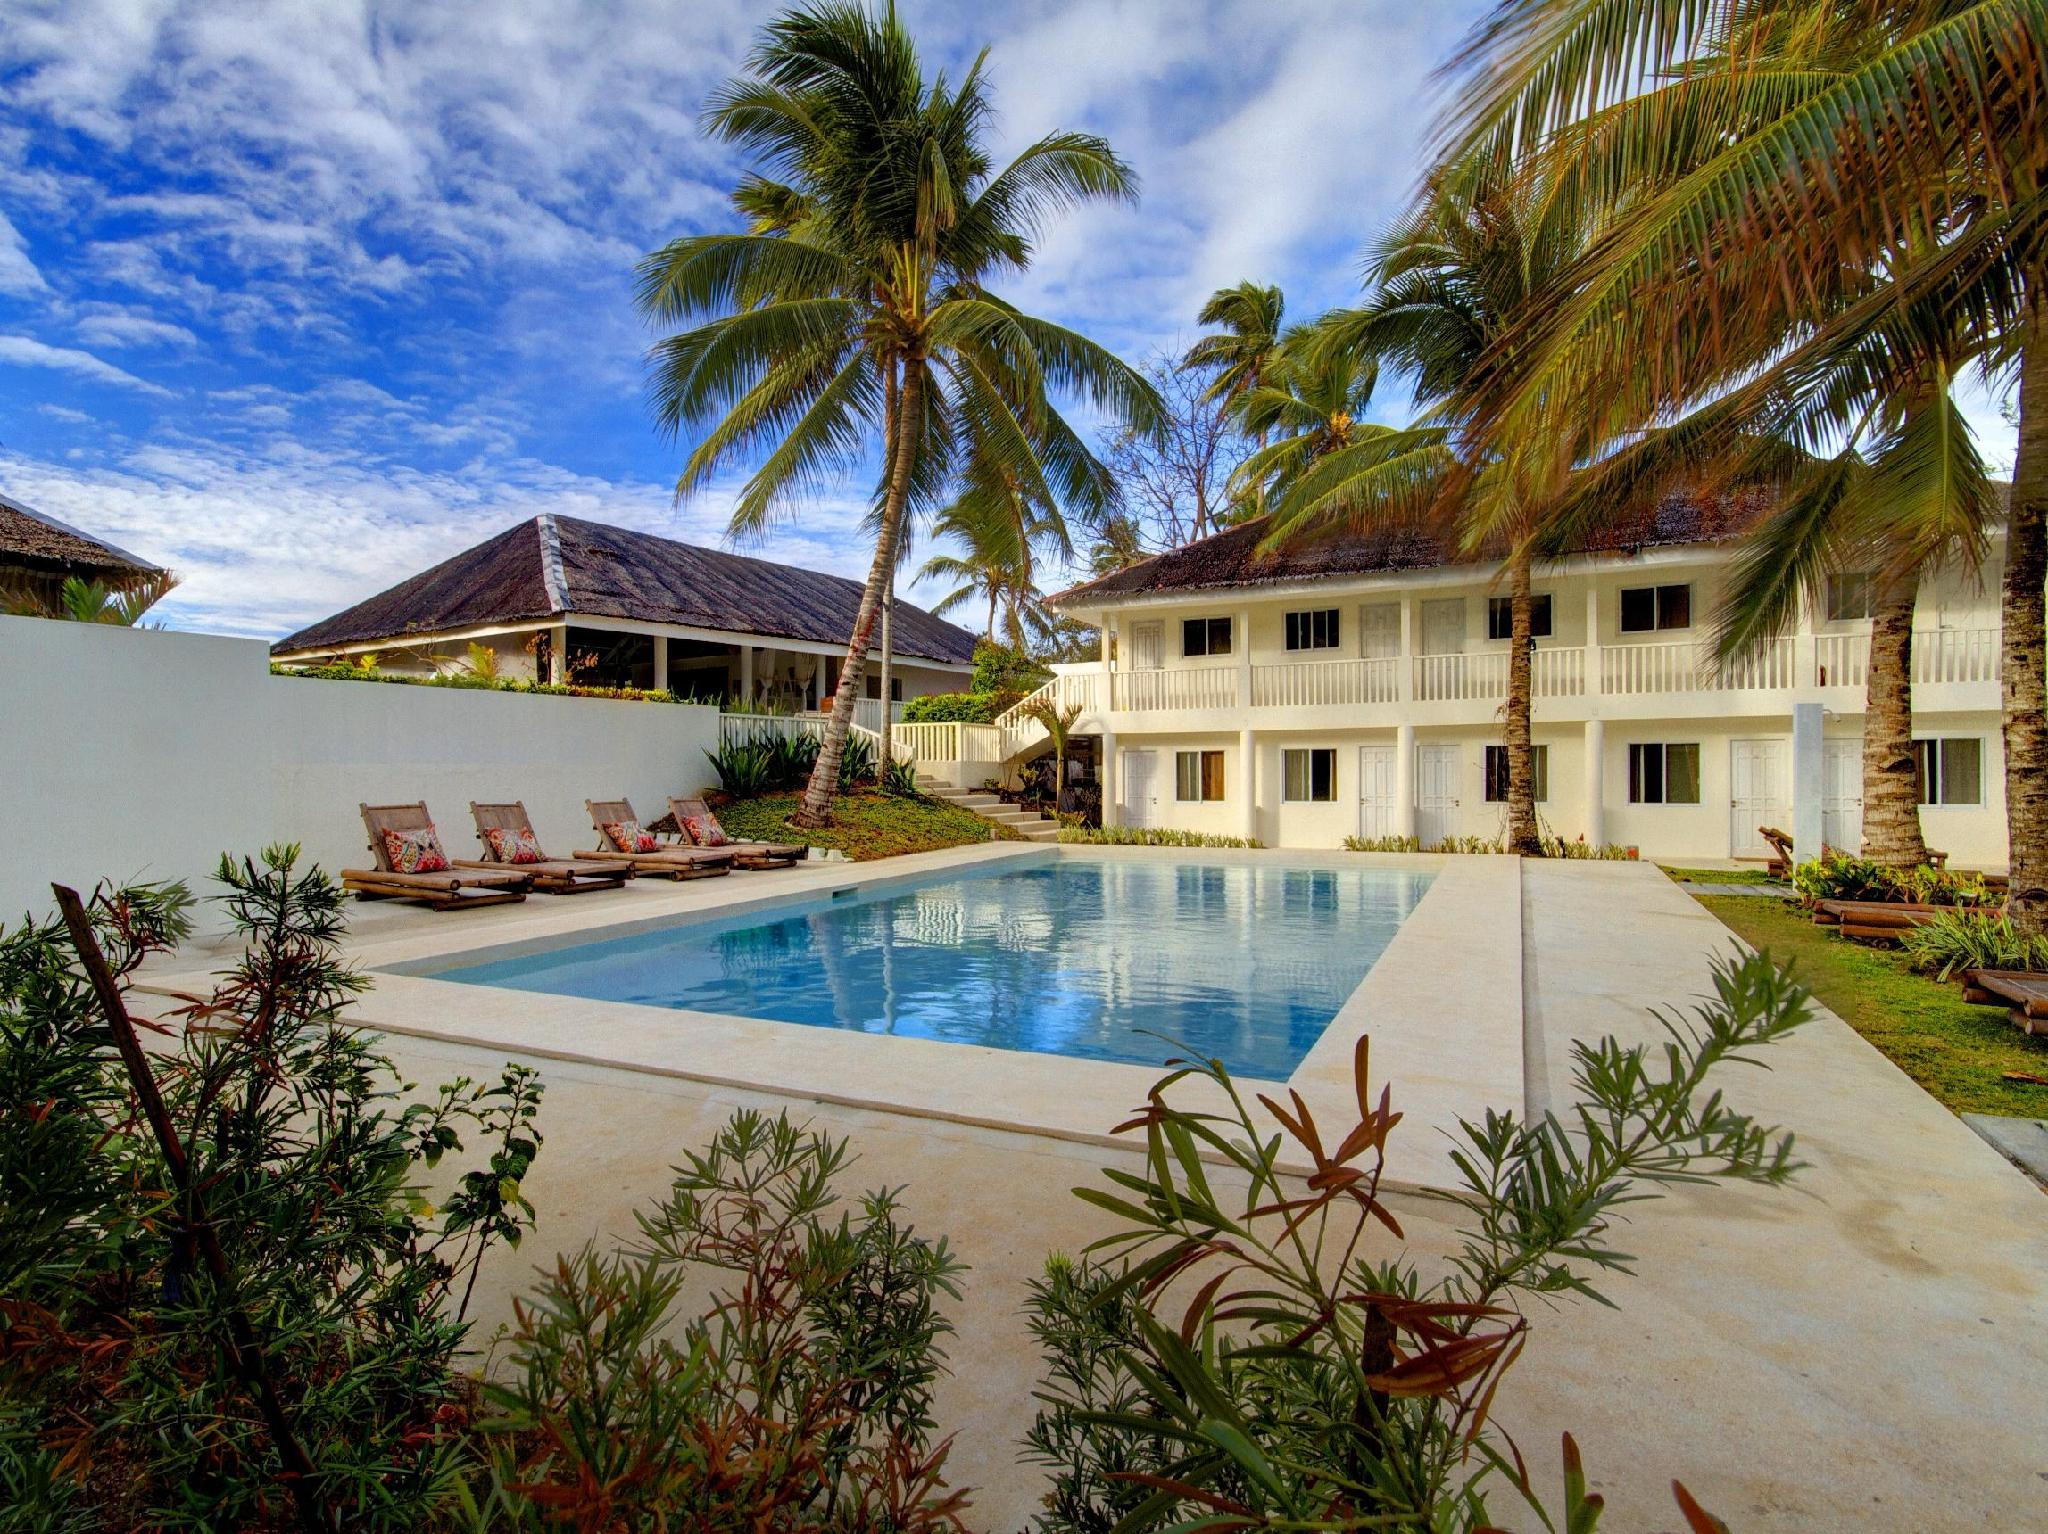 Momo Beach House - Hotels Information/Map/Reviews/Reservation